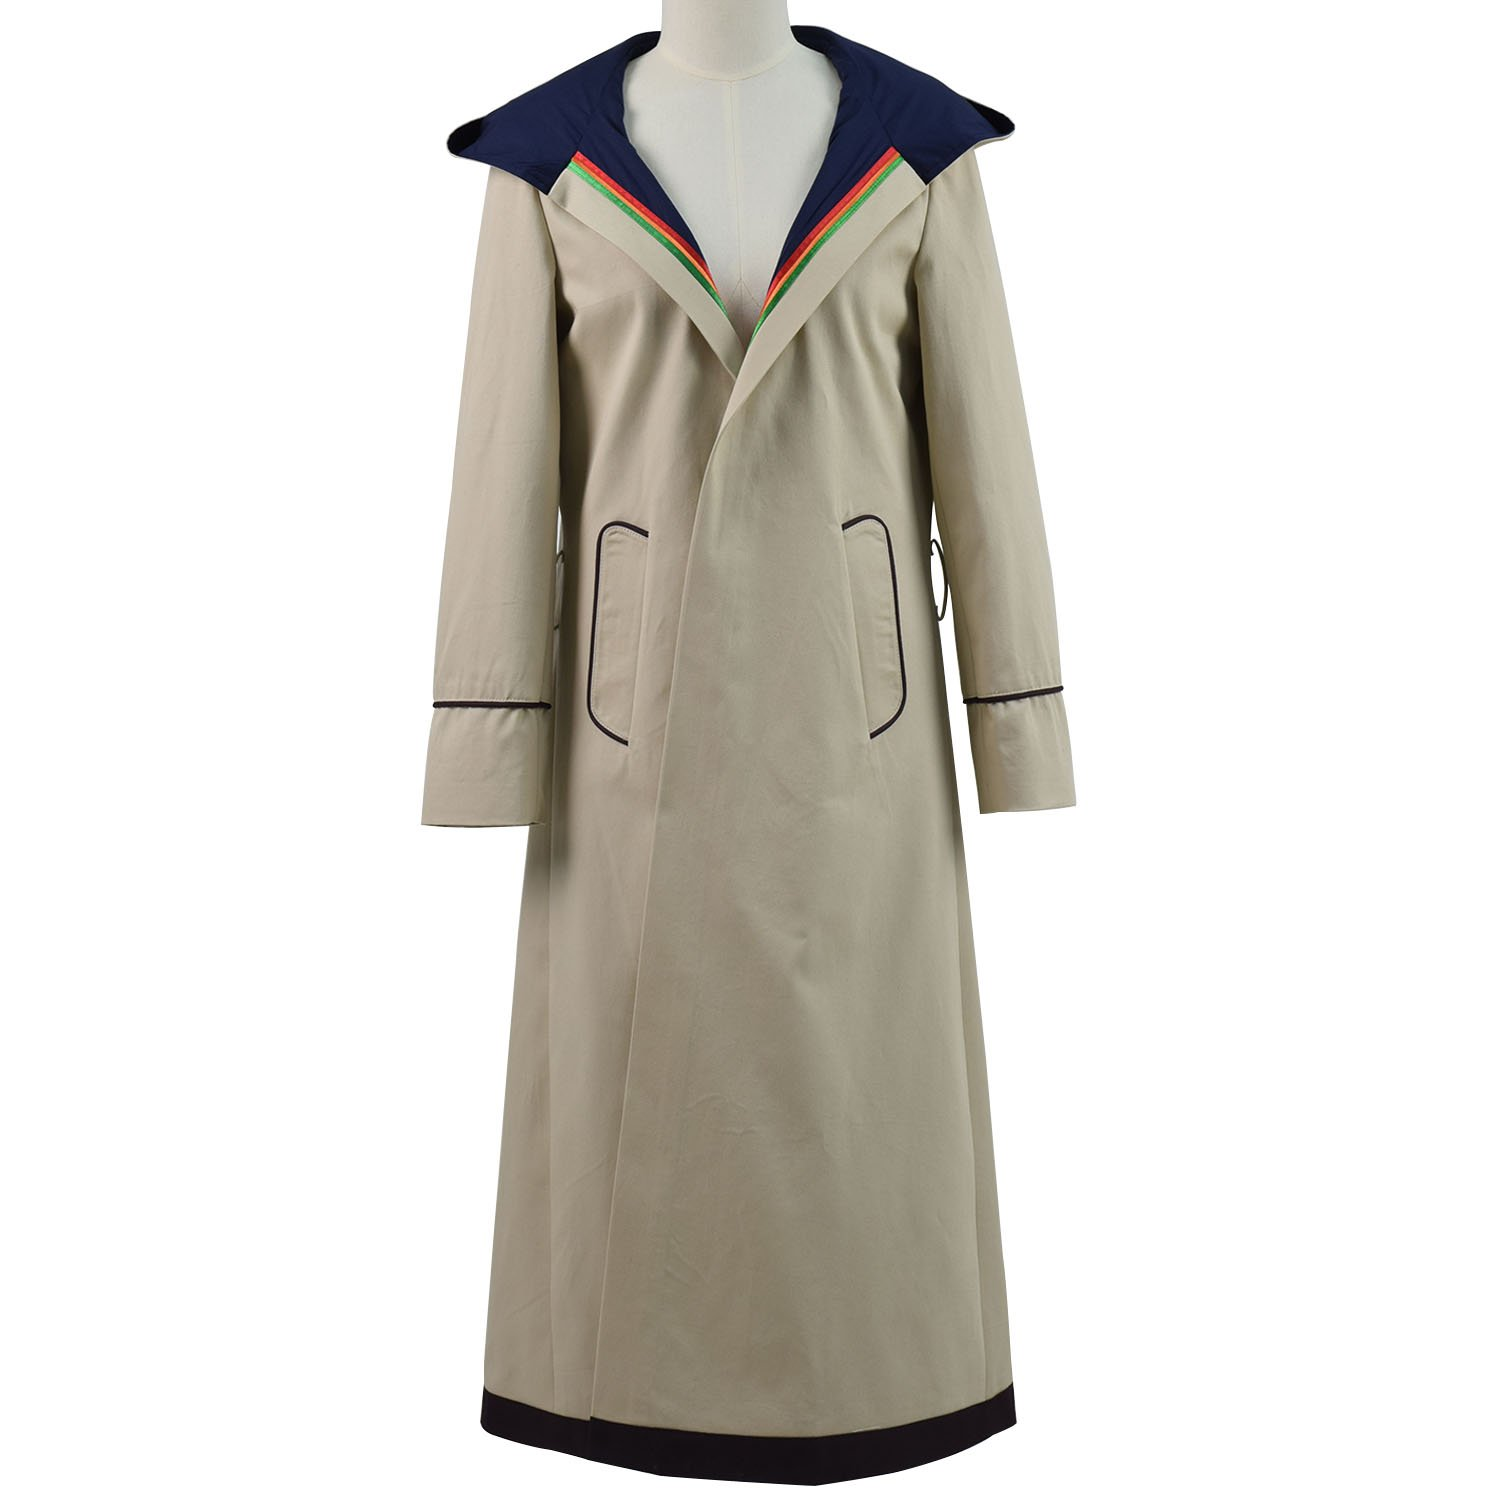 VOSTE Who Is Doctor thirteenth 13th Dr. Cosplay Costume Beige Coat For Women (Custom-Made, Beige)